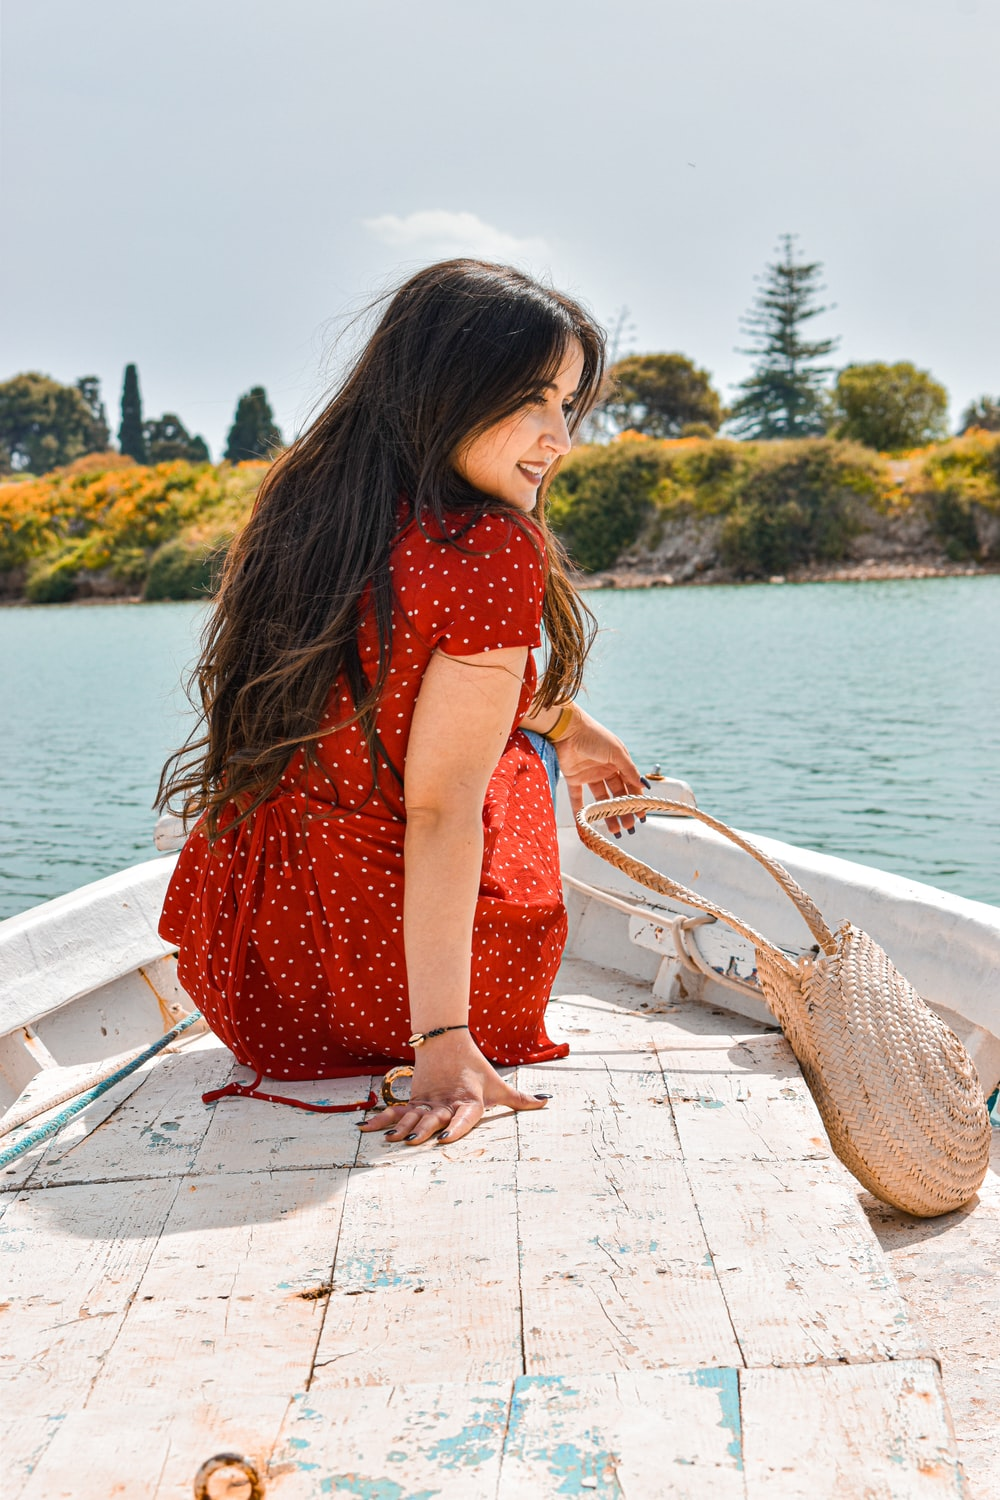 girl in red dress standing on dock during daytime